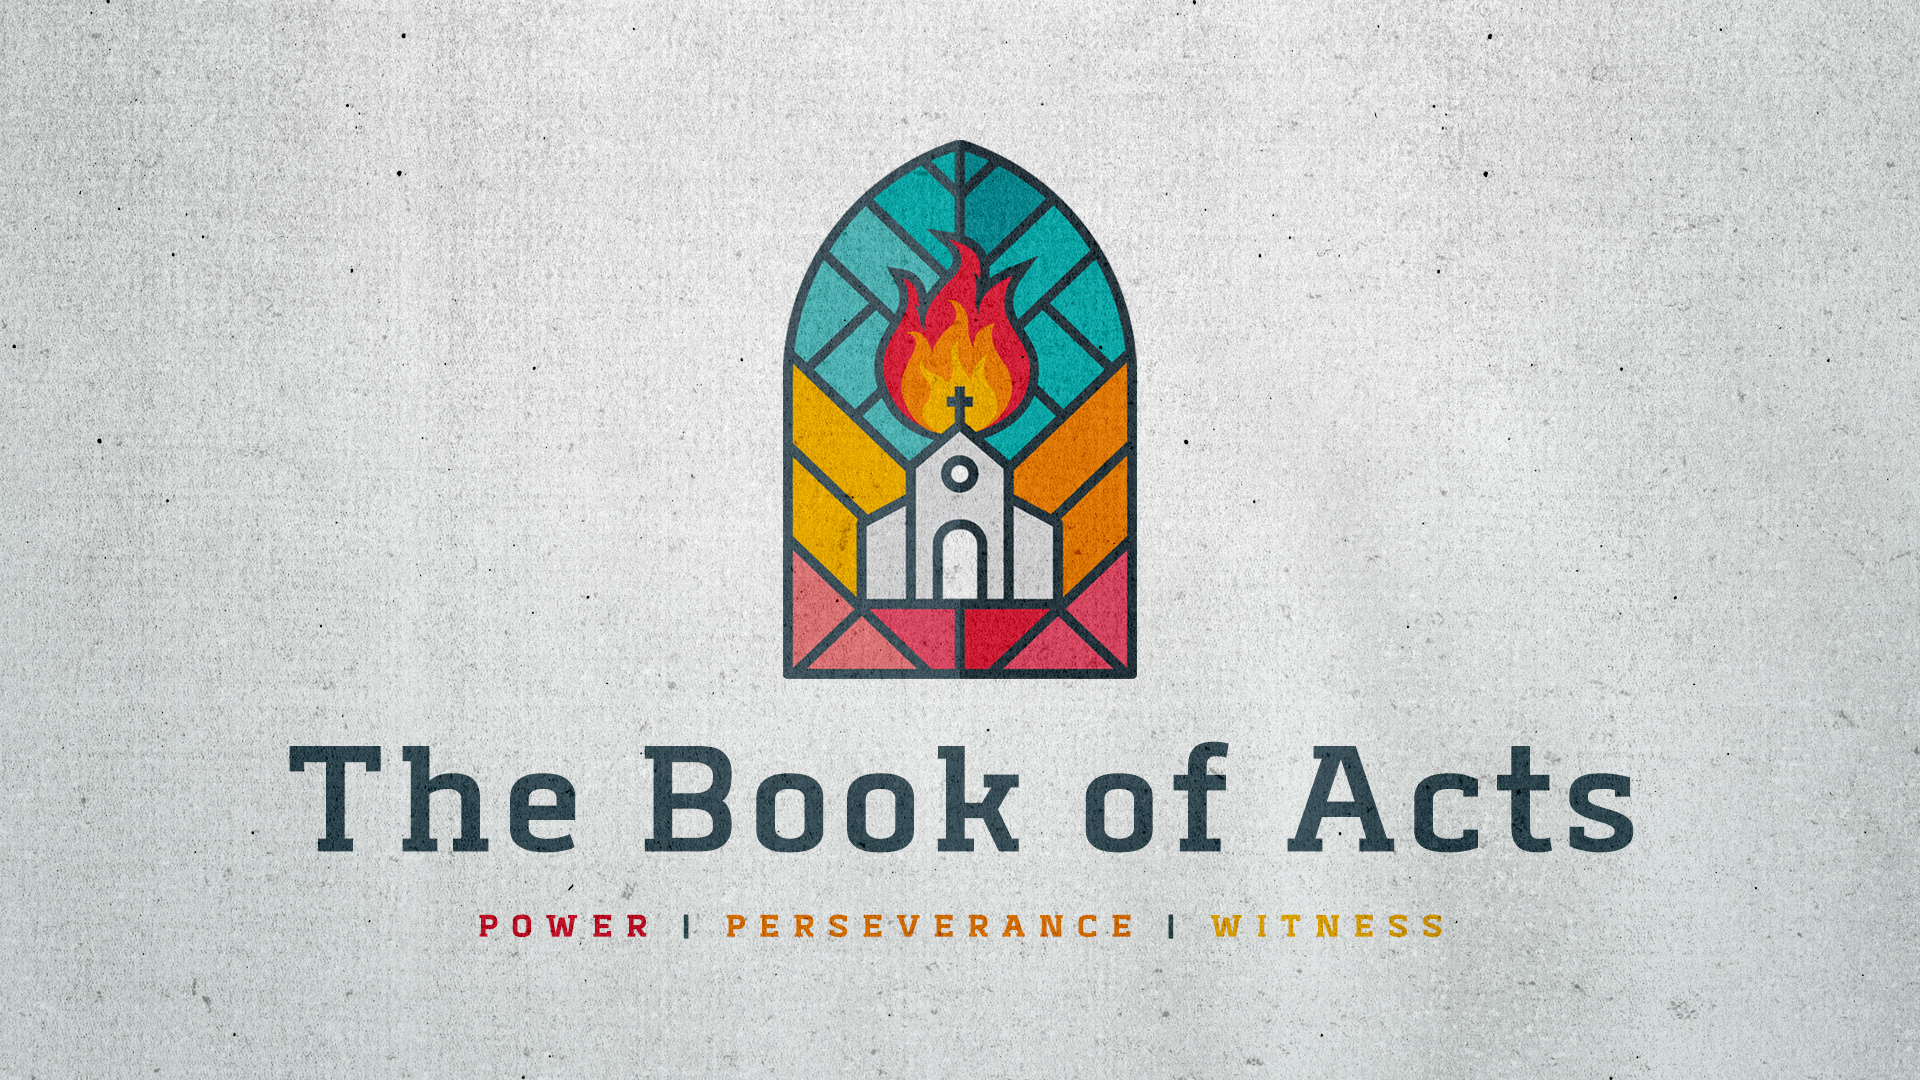 TheBookOfActs_SermonGraphic_2019 (1)